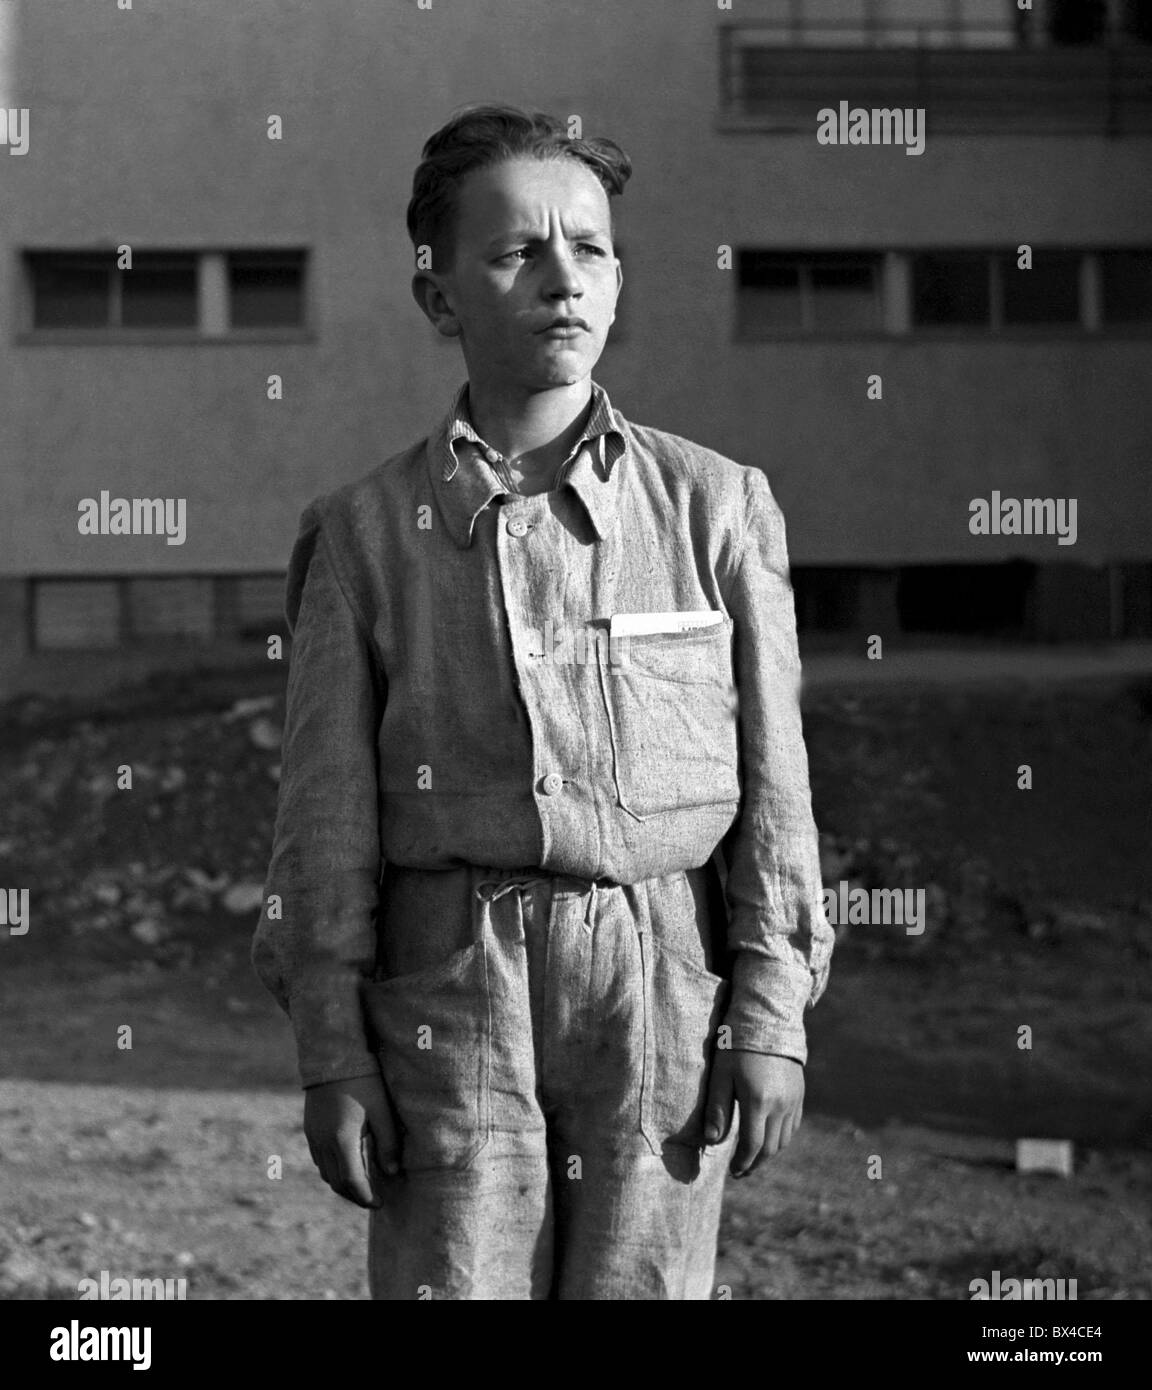 teenage boy recruited to become iron worker - Stock Image